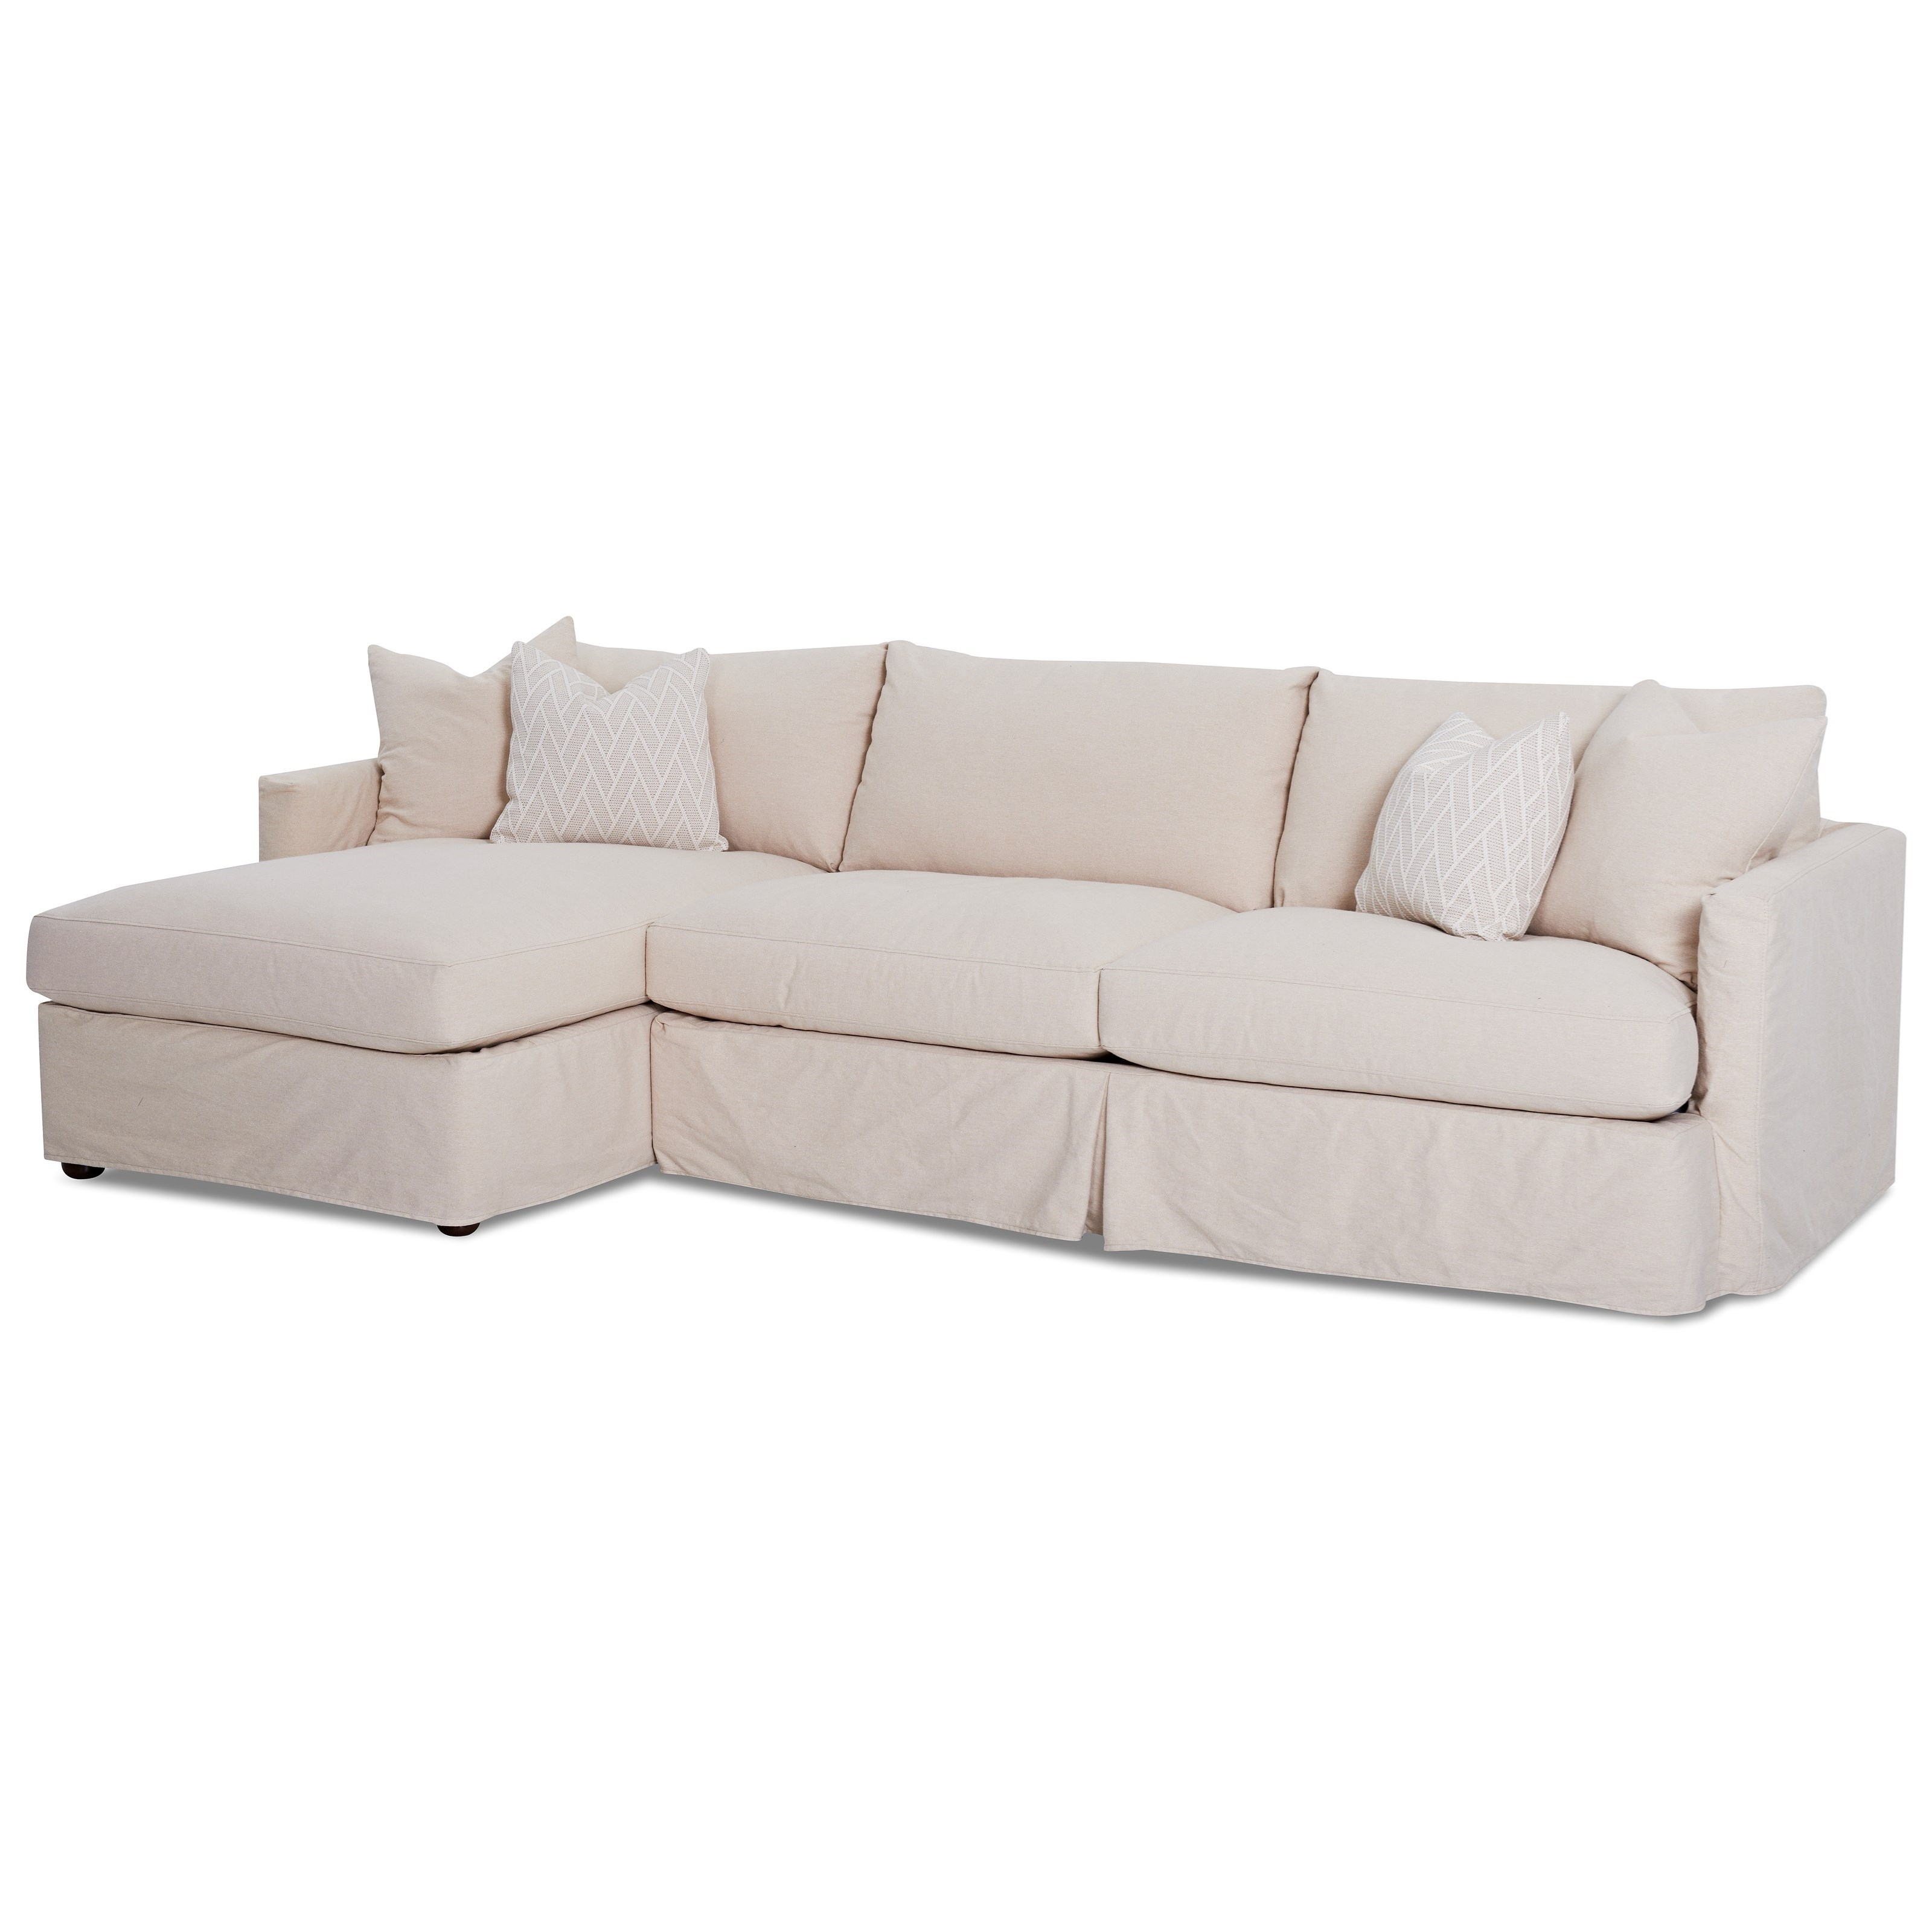 Laf Chaise Sectional Sofa | Baci Living Room Intended For Malbry Point 3 Piece Sectionals With Raf Chaise (Image 20 of 25)